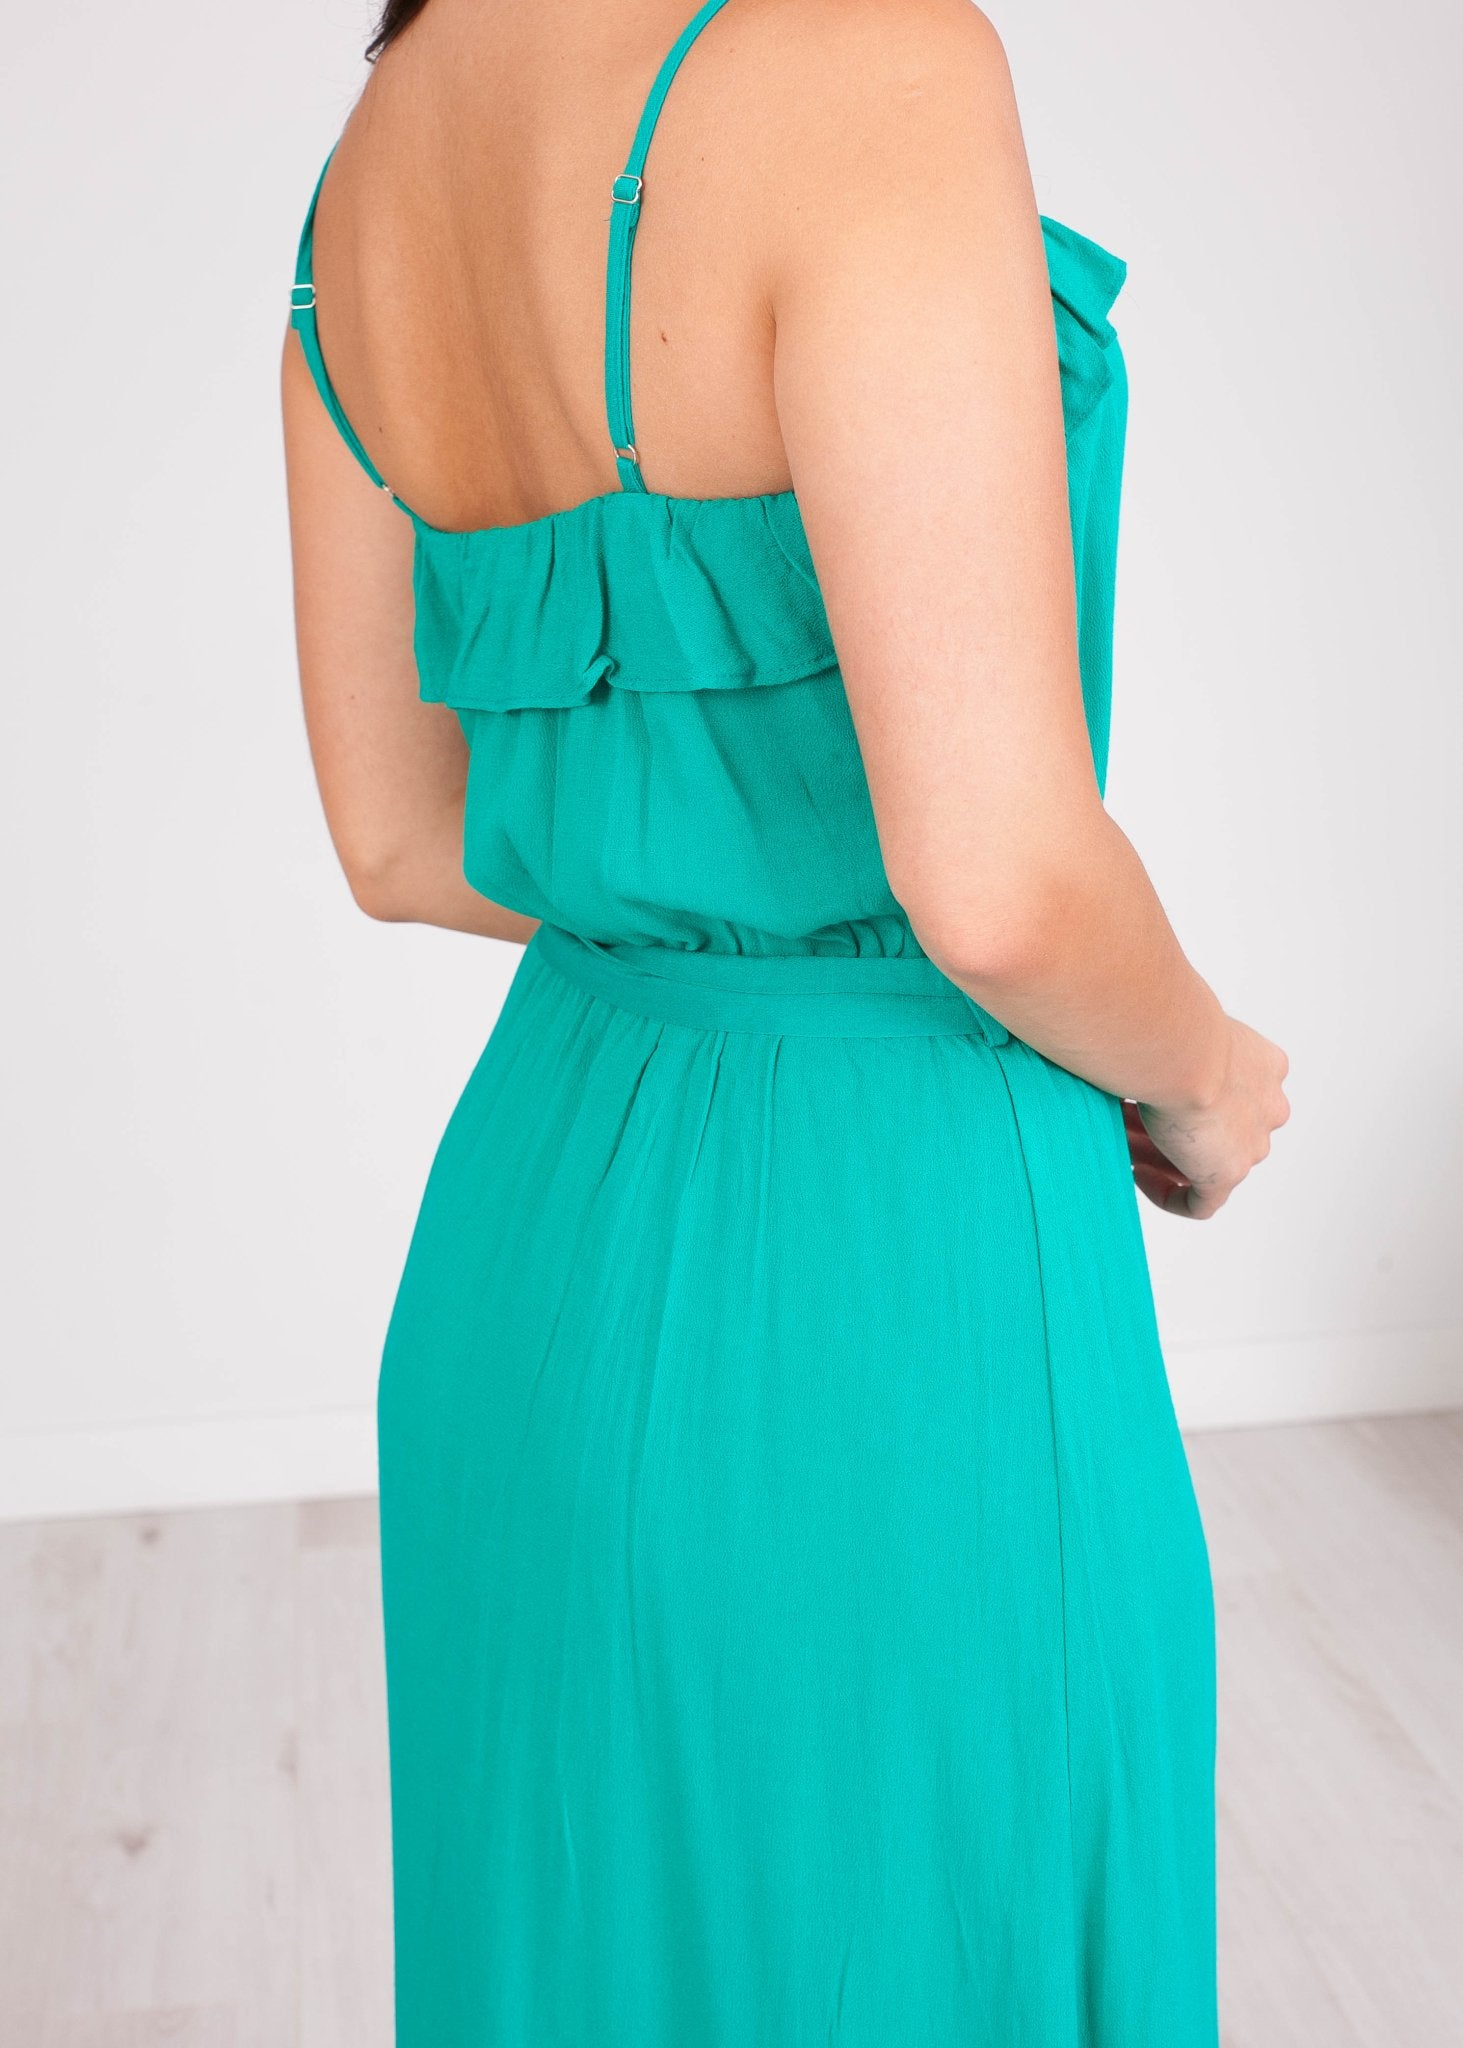 Cherie Teal Midi Dress - The Walk in Wardrobe